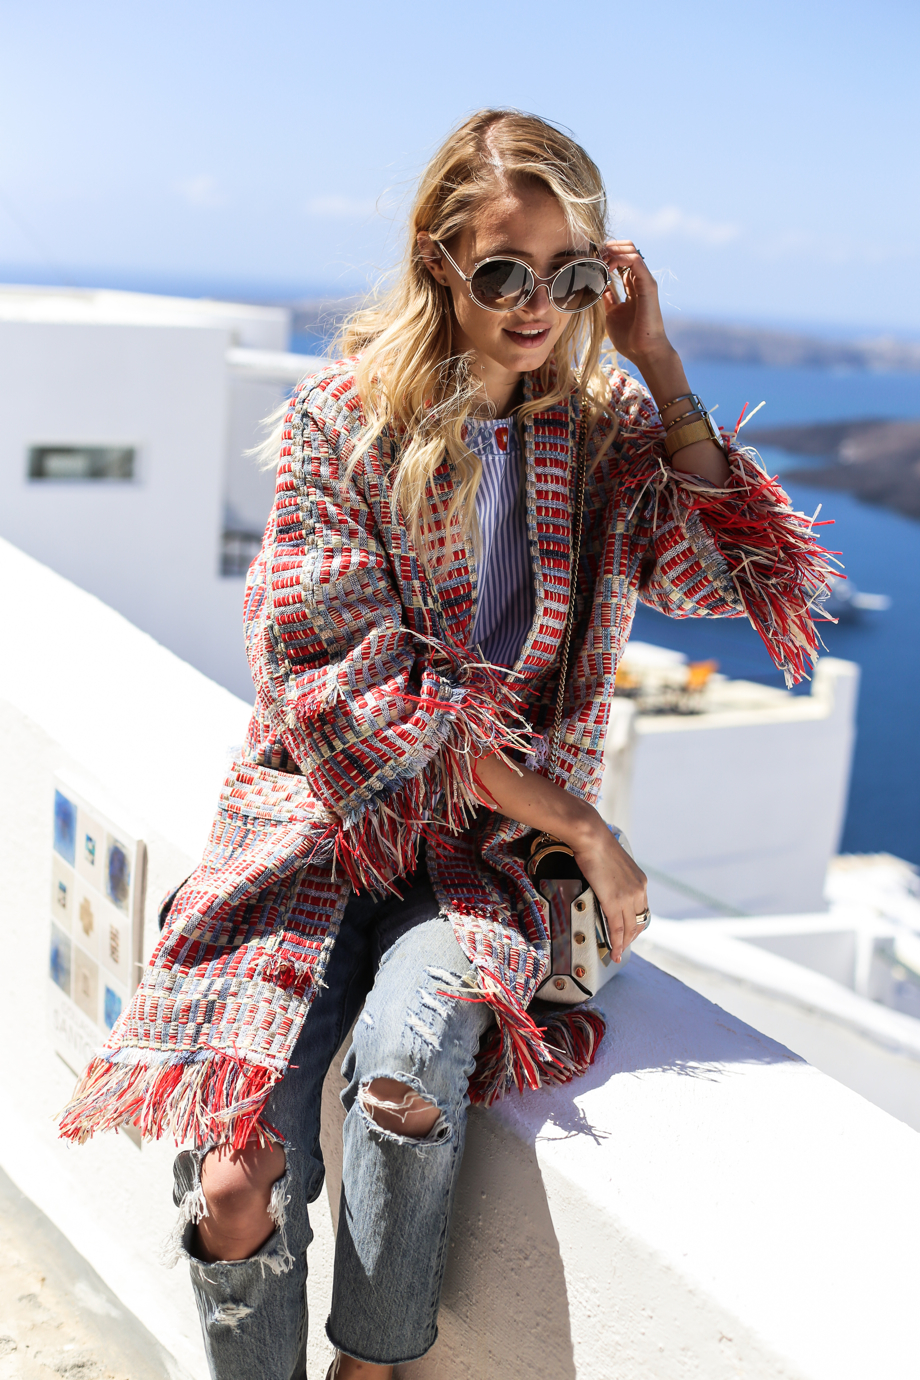 Stripes_Fringes_Levis_ToryBurch_ohhcouture_Santorini09